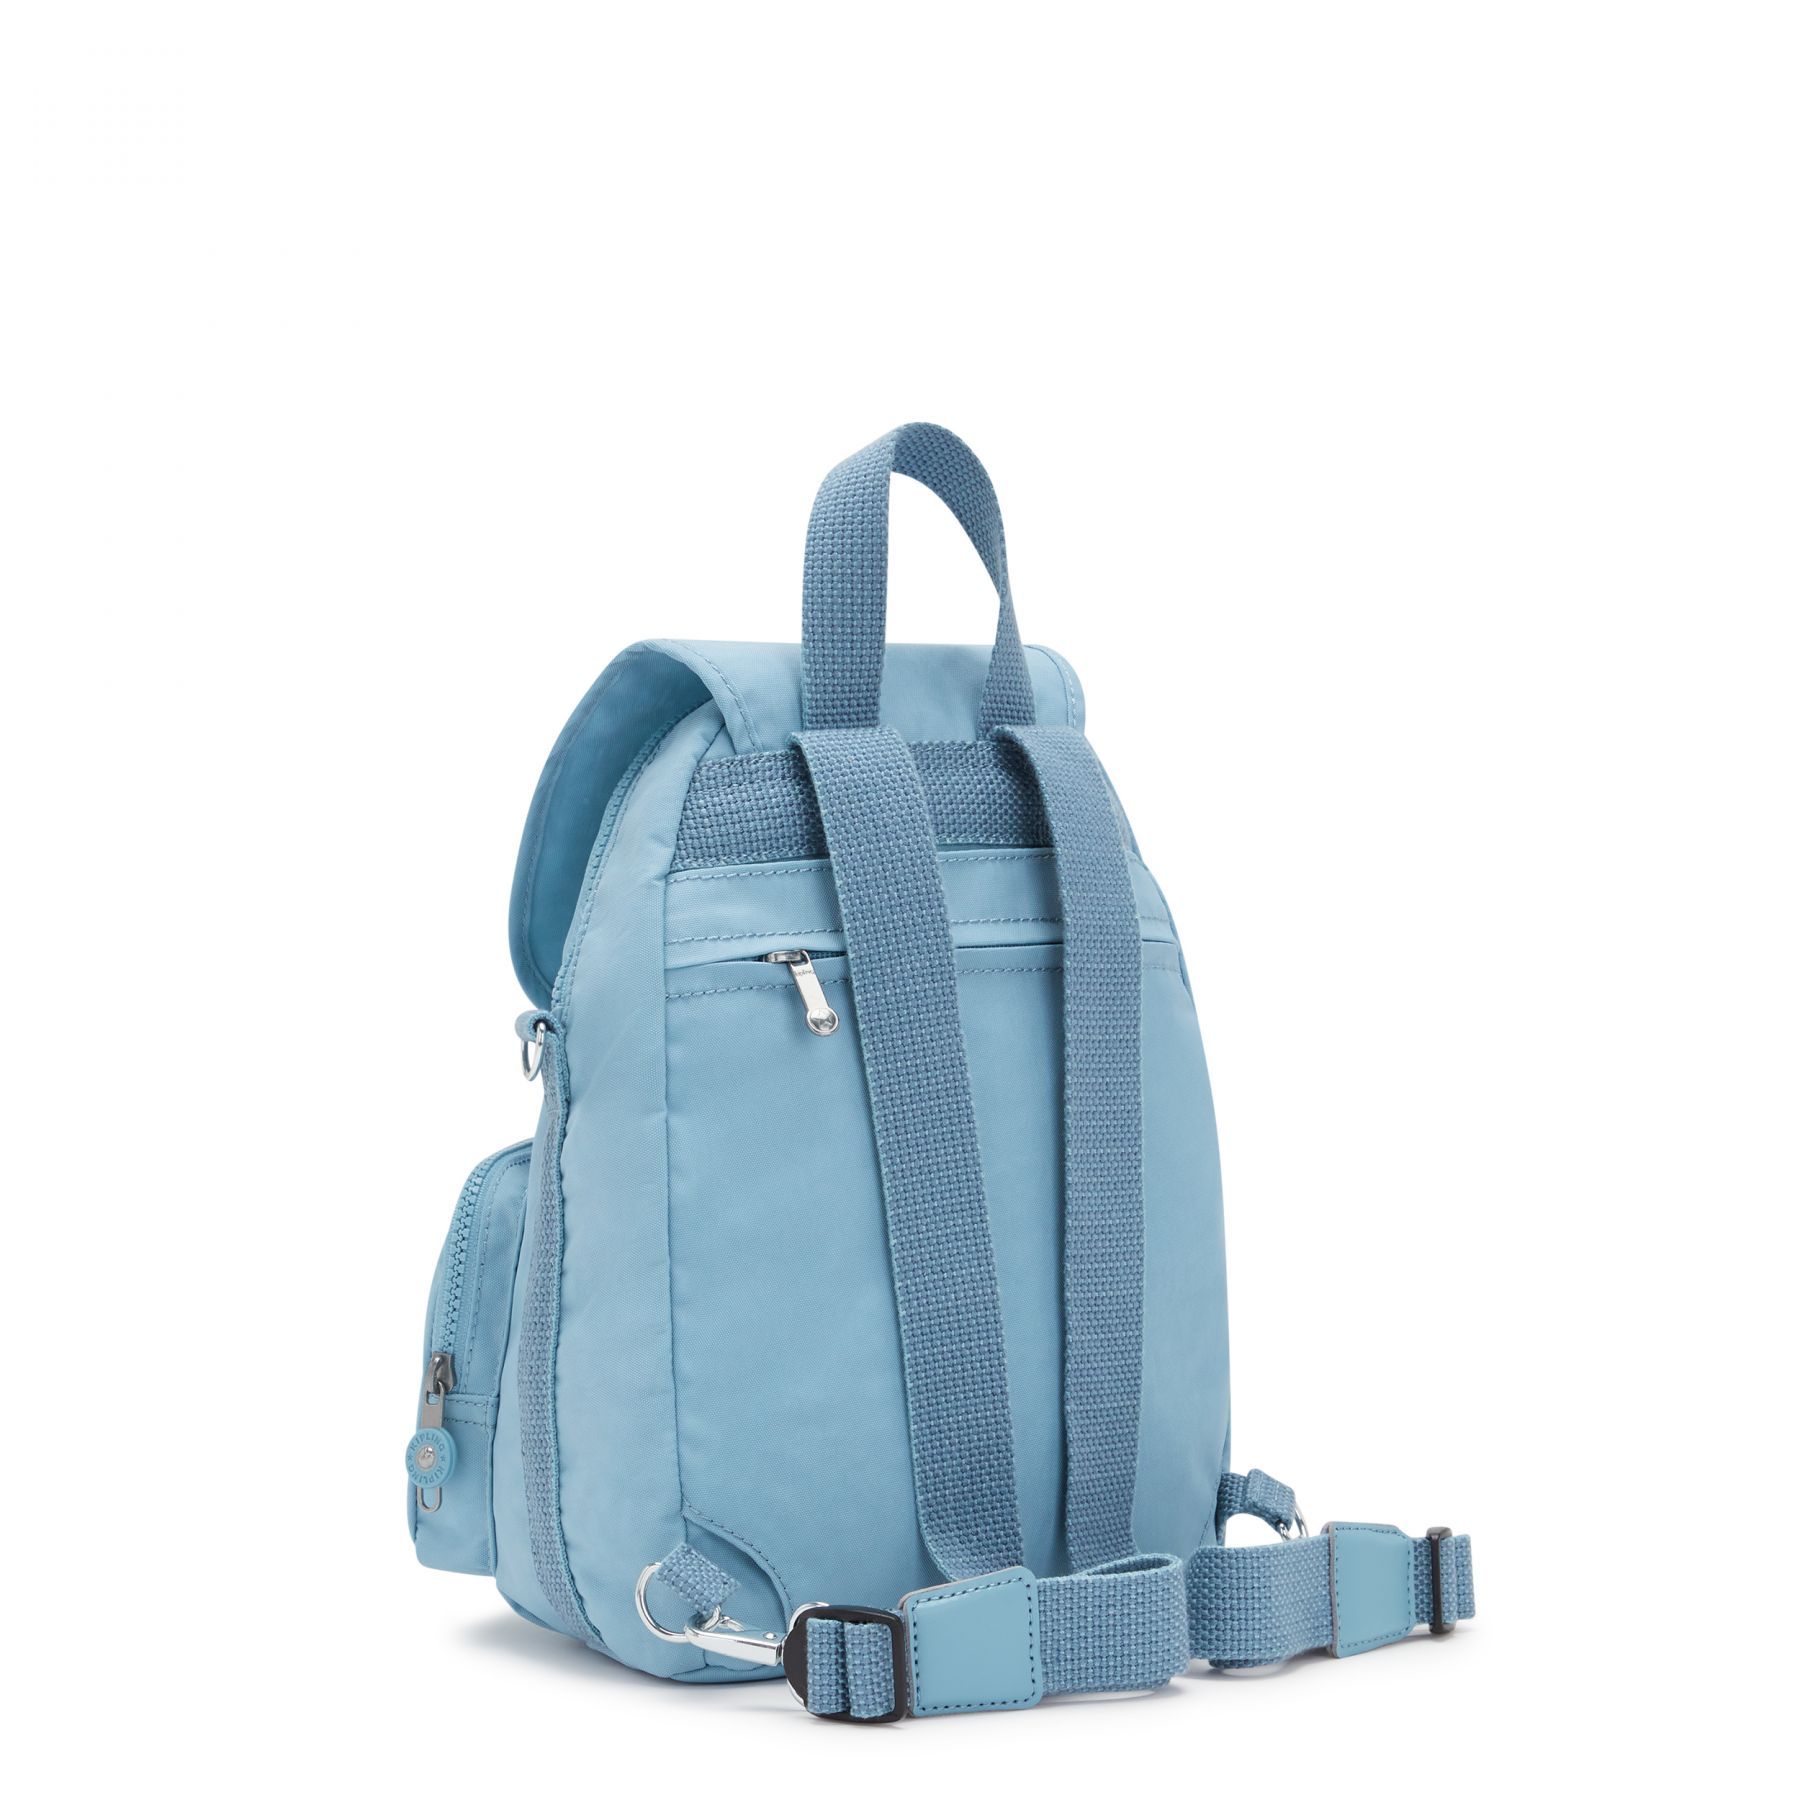 FIREFLY UP NEW IN by Kipling